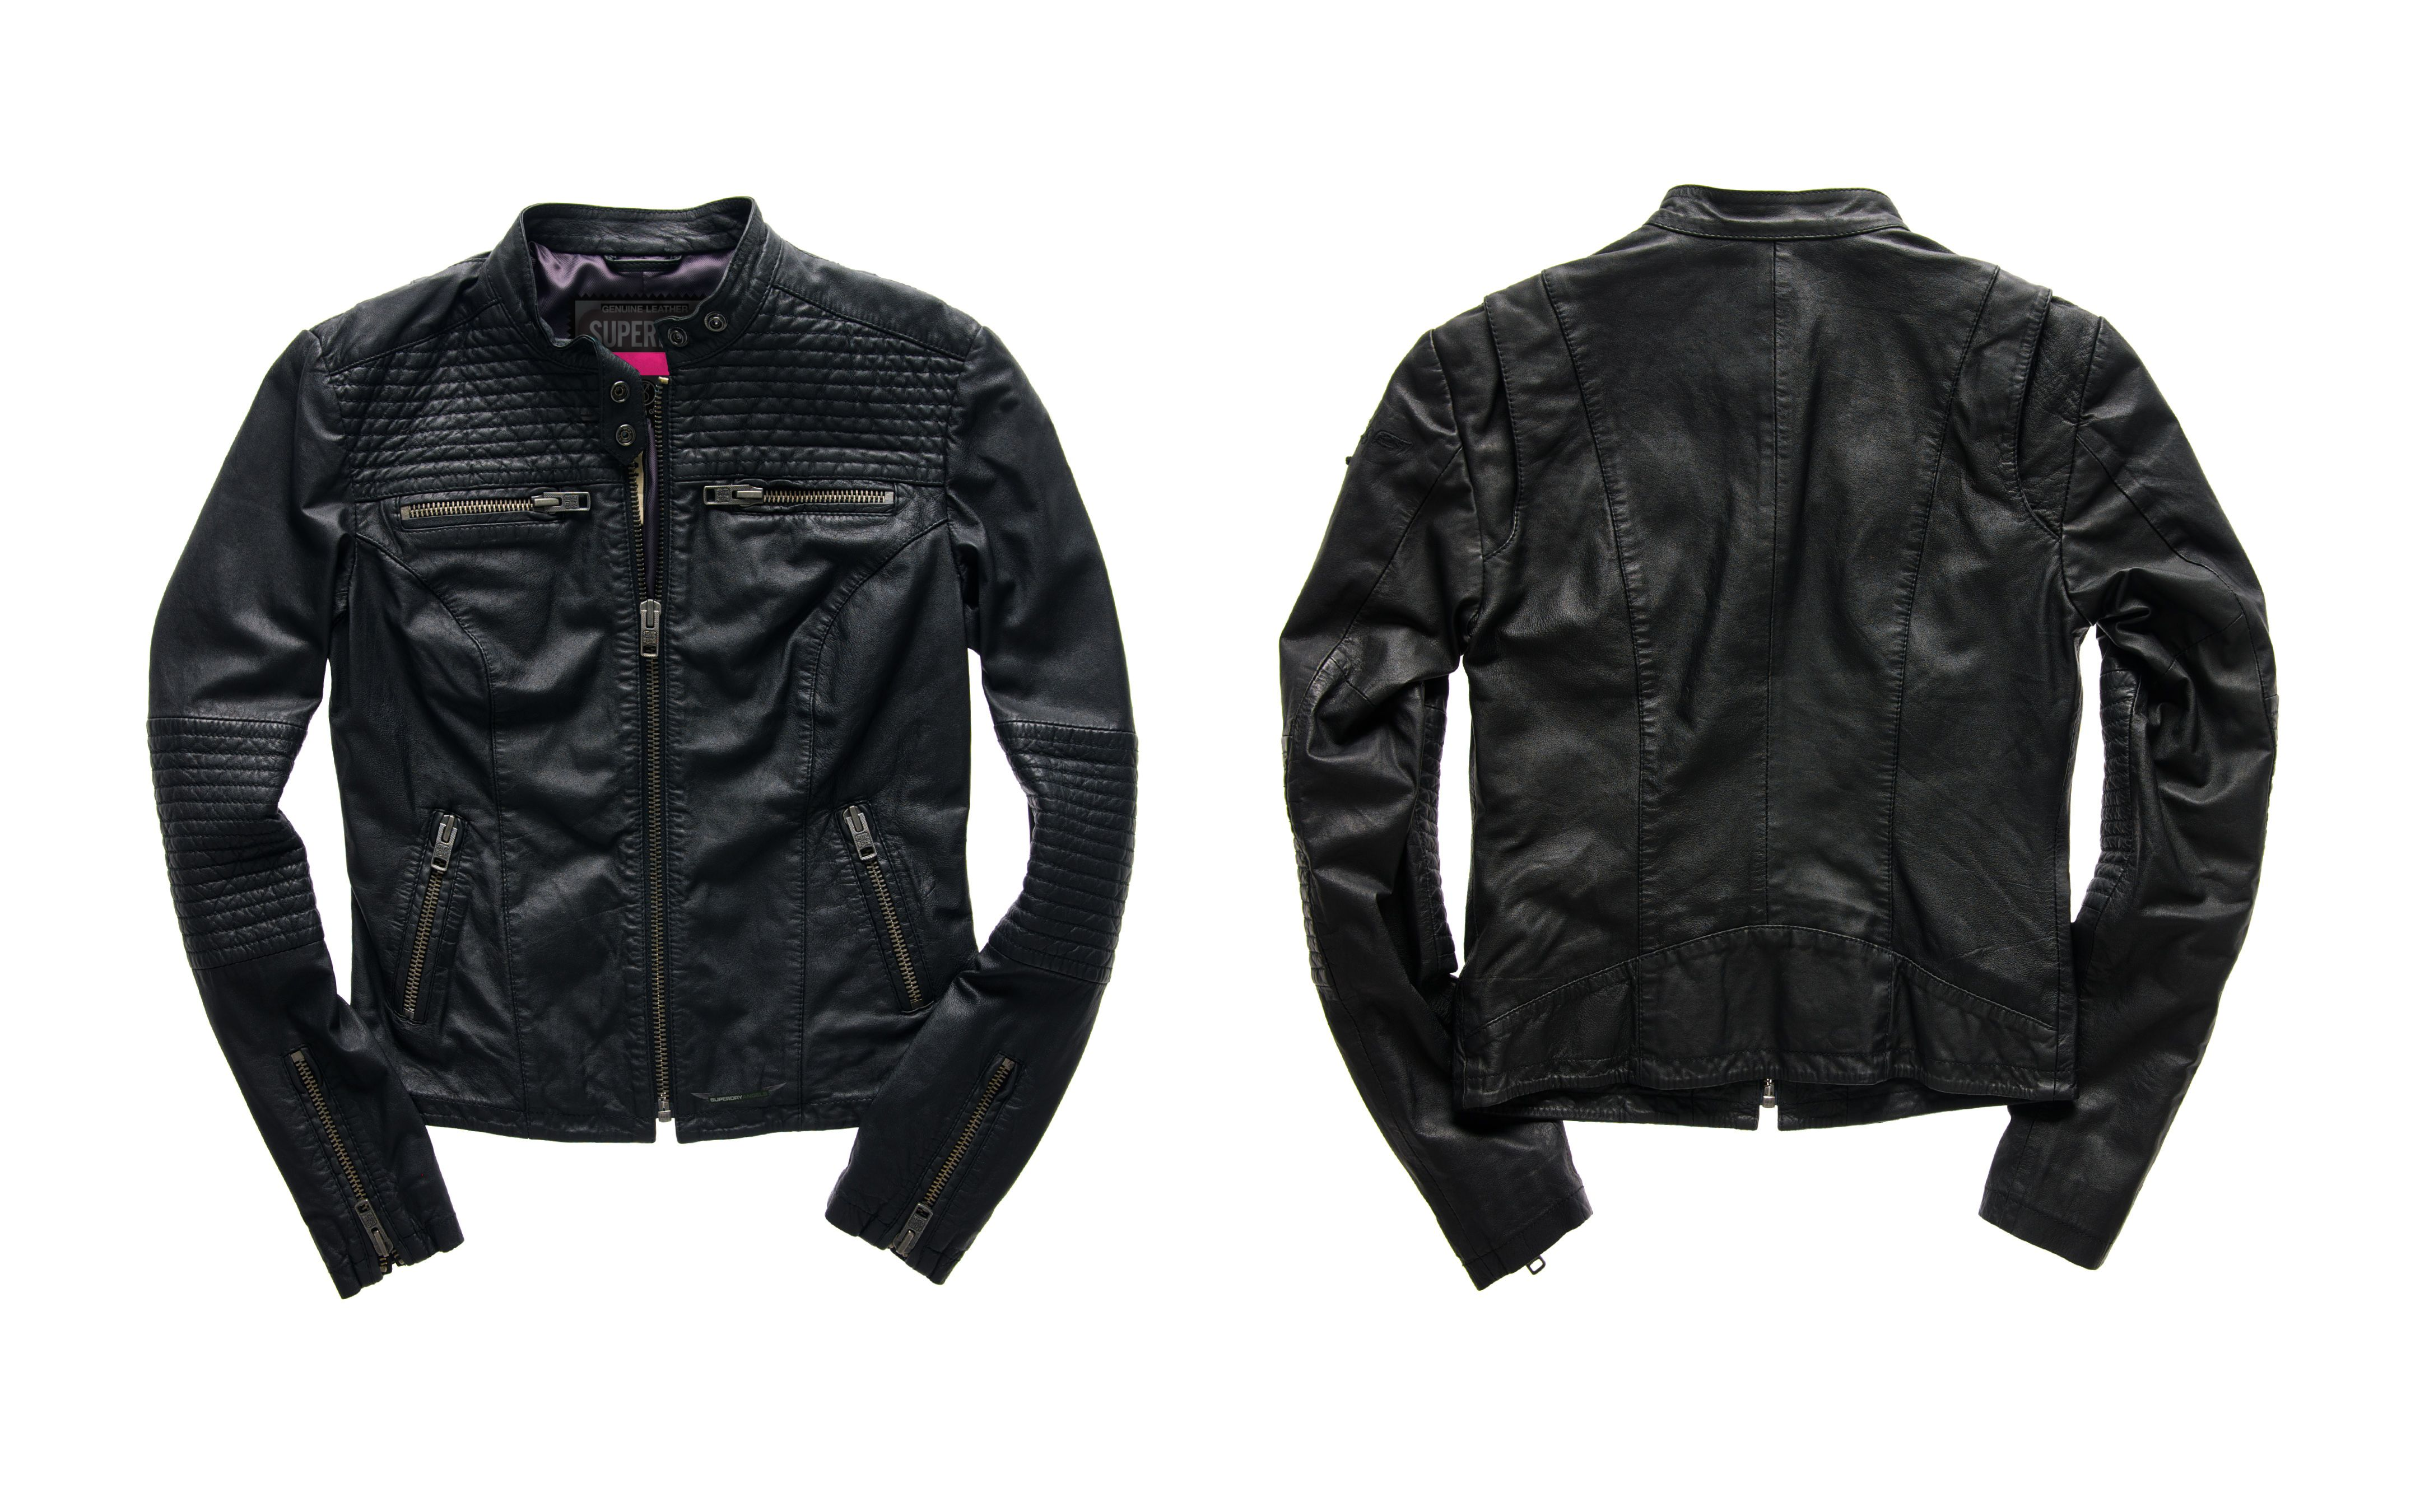 Leather jacket superdry - Win One Of Five Fabulous Superdry Leather Jackets As Featured In Cosmopolitan